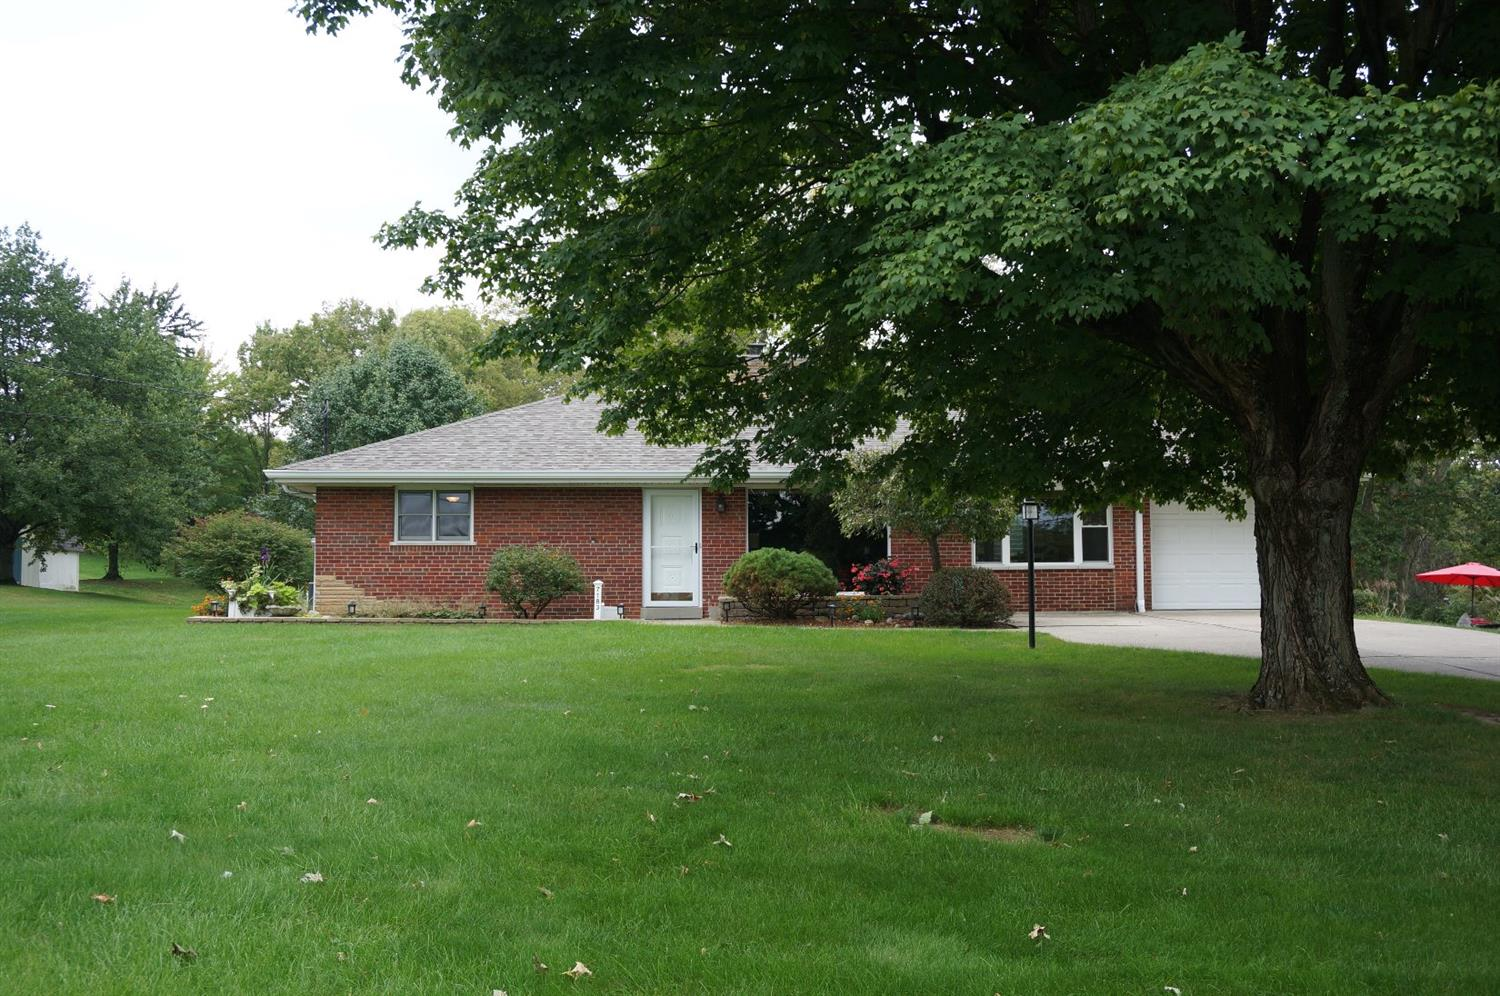 Property for sale at 7183 Dimmick Road, West Chester,  OH 45069